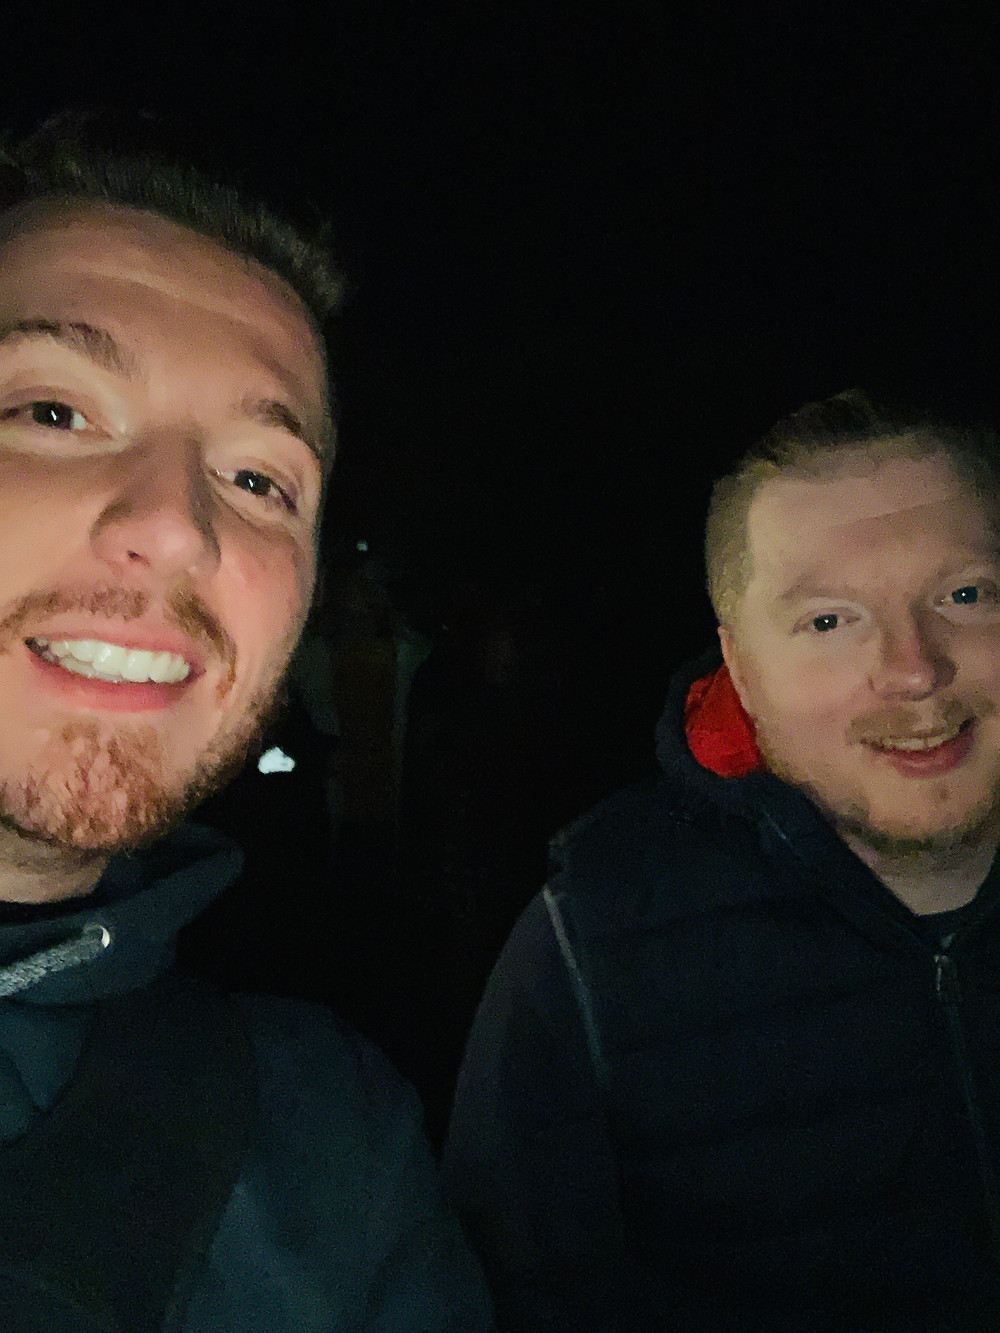 Selfie of Ross and his friend Mark as they wait for the fireworks